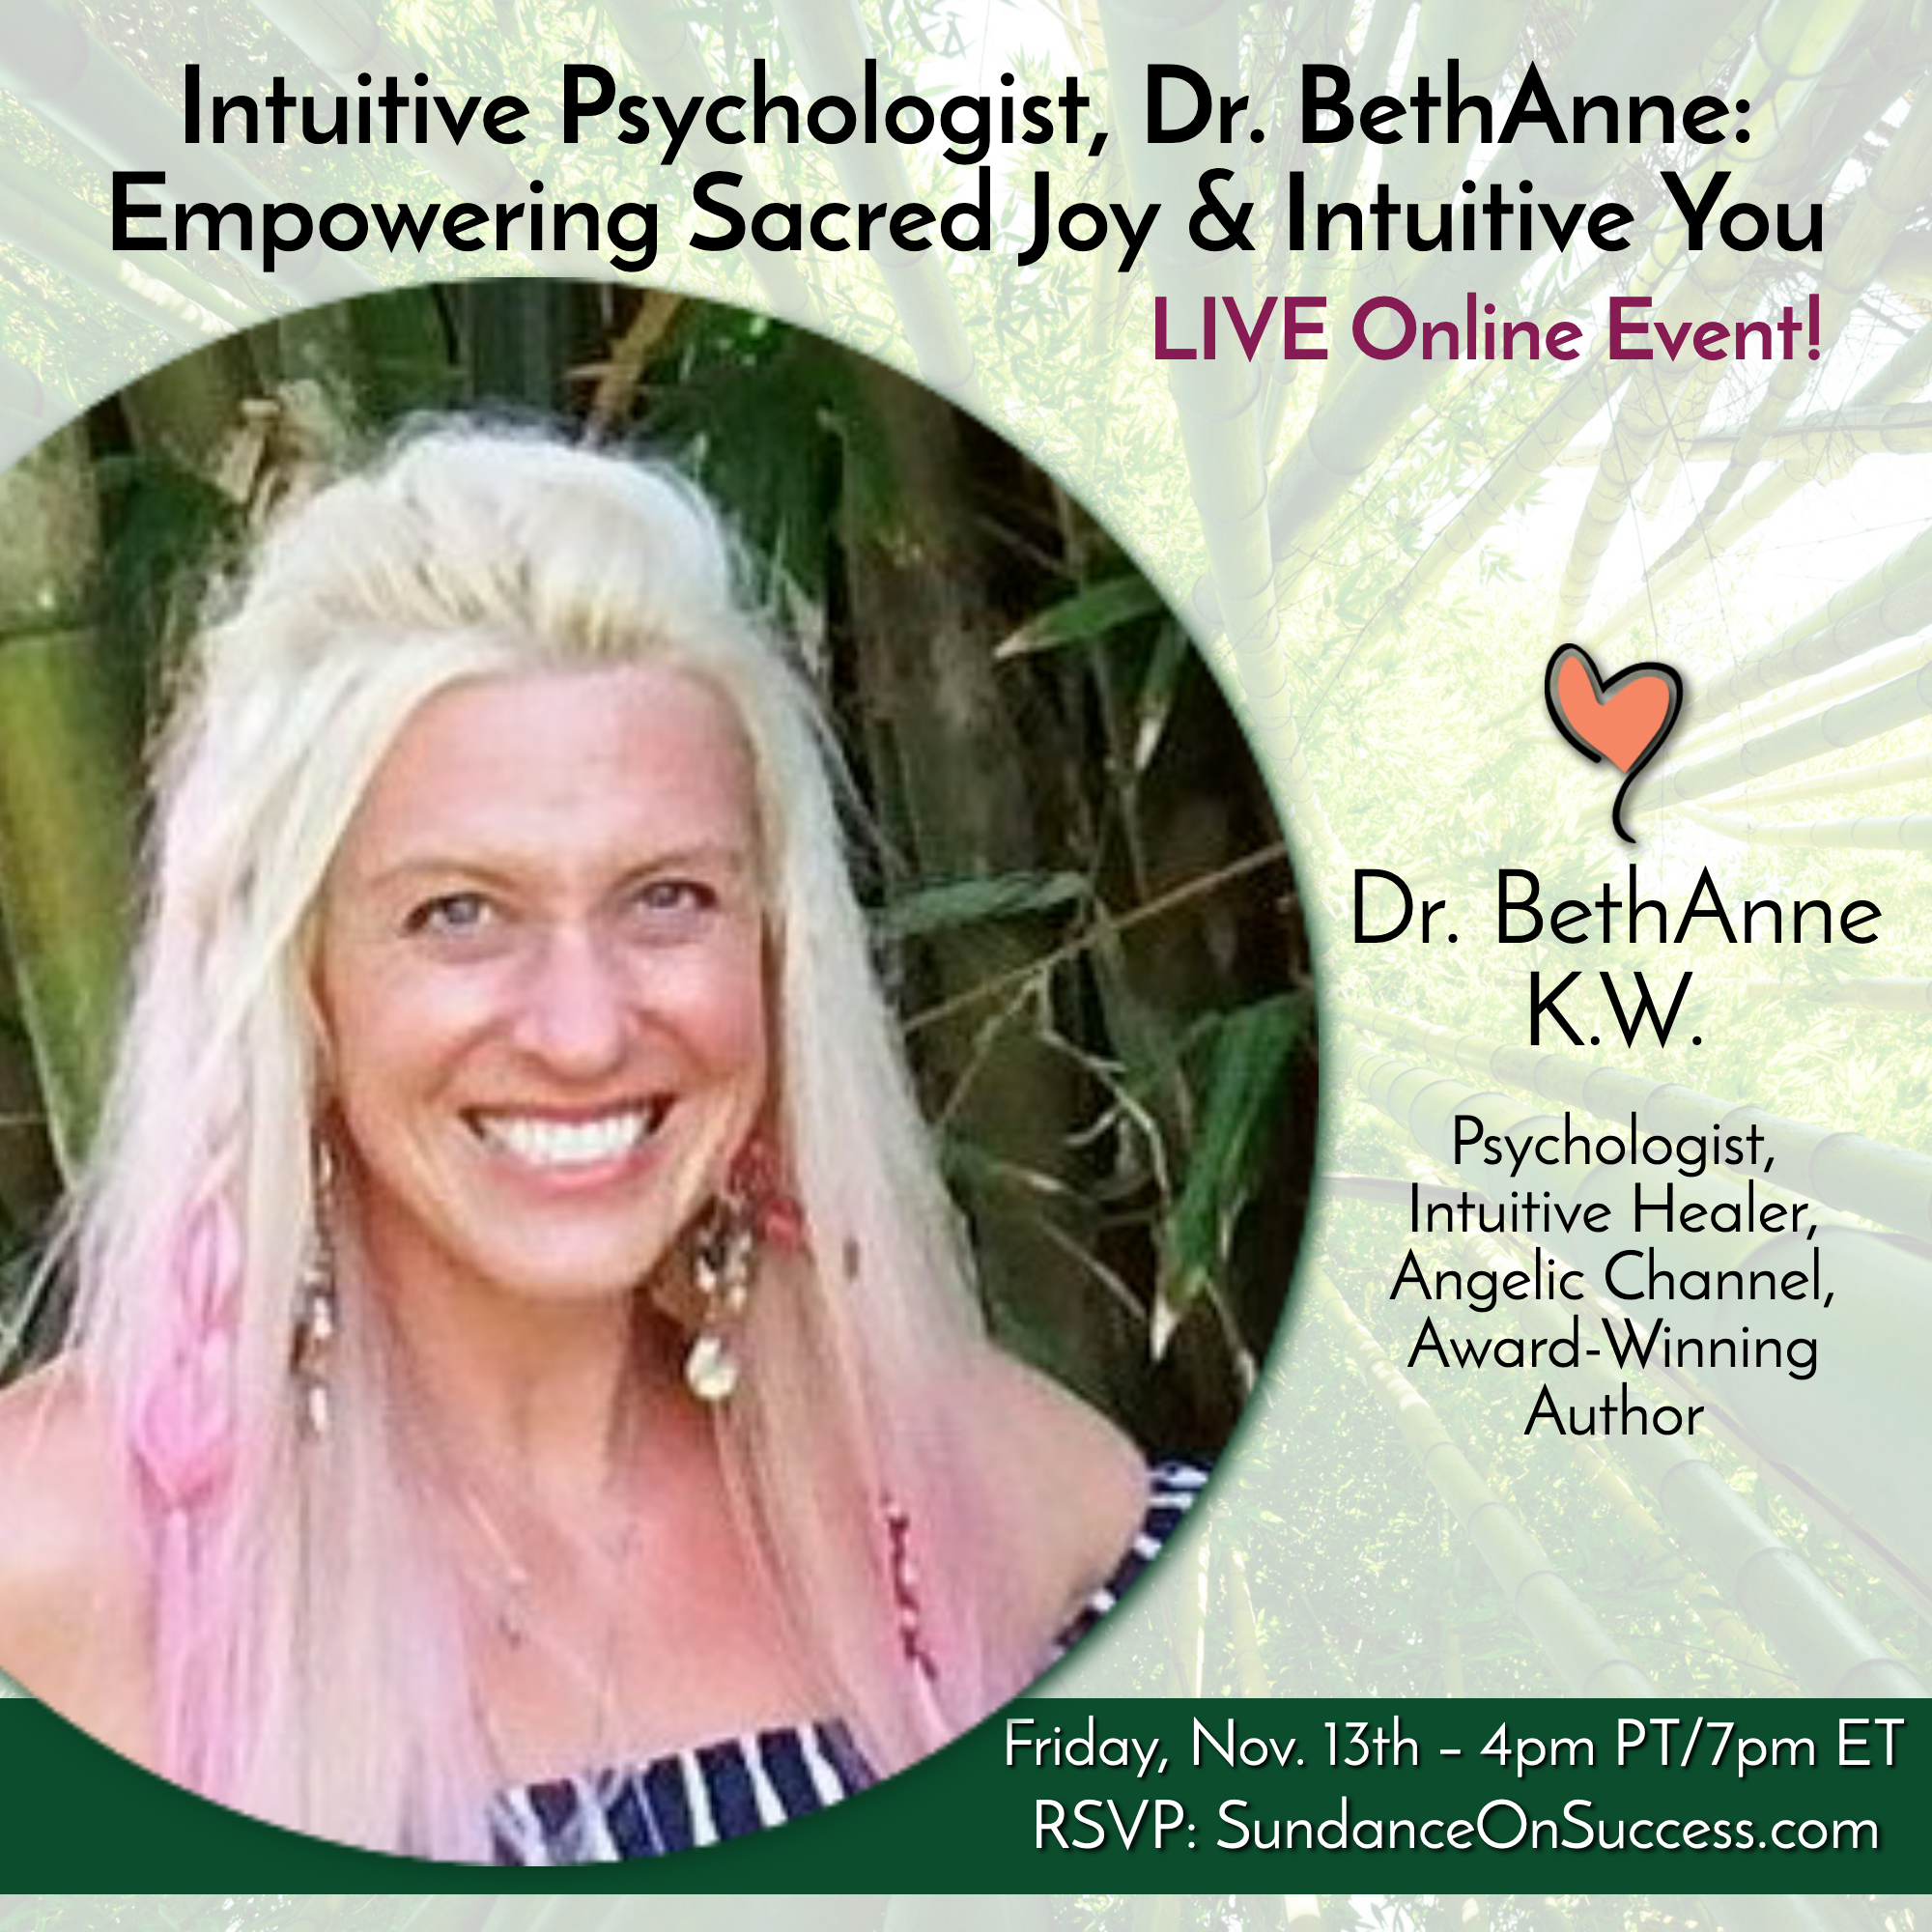 Intuitive Psychologist, Dr. BethAnne: Empowering Sacred Joy & Intuitive You banner